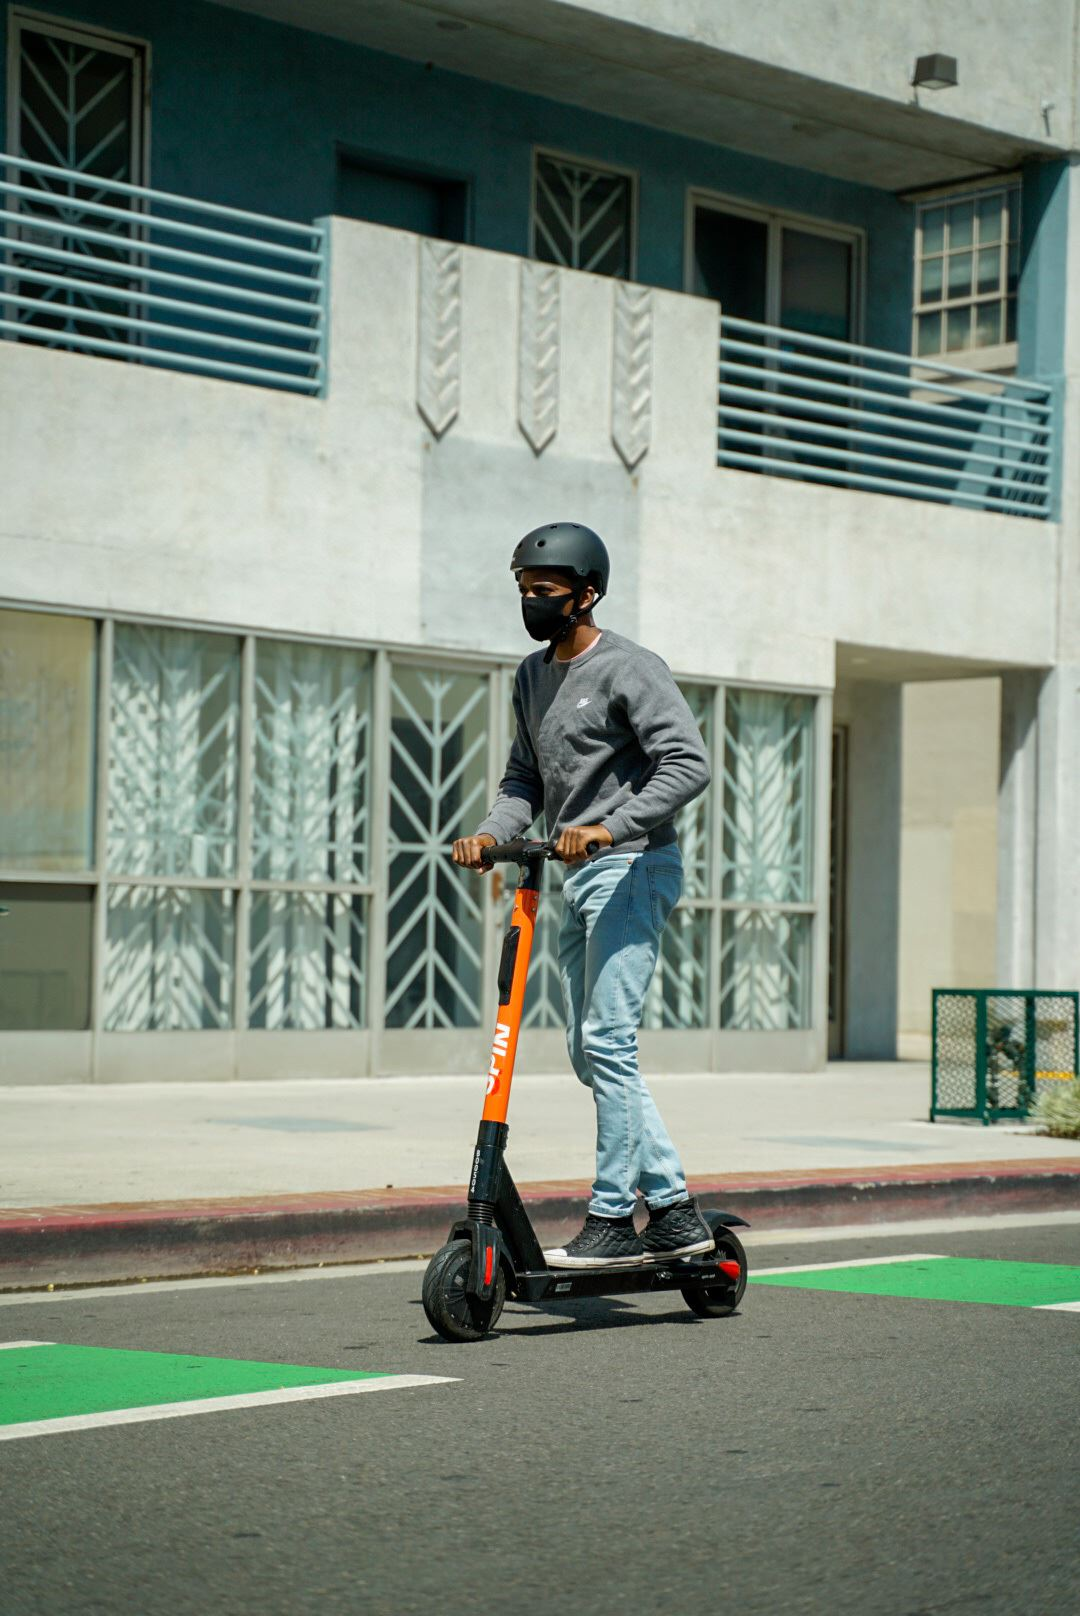 A young man rides a scooter down the street wearing a face mask